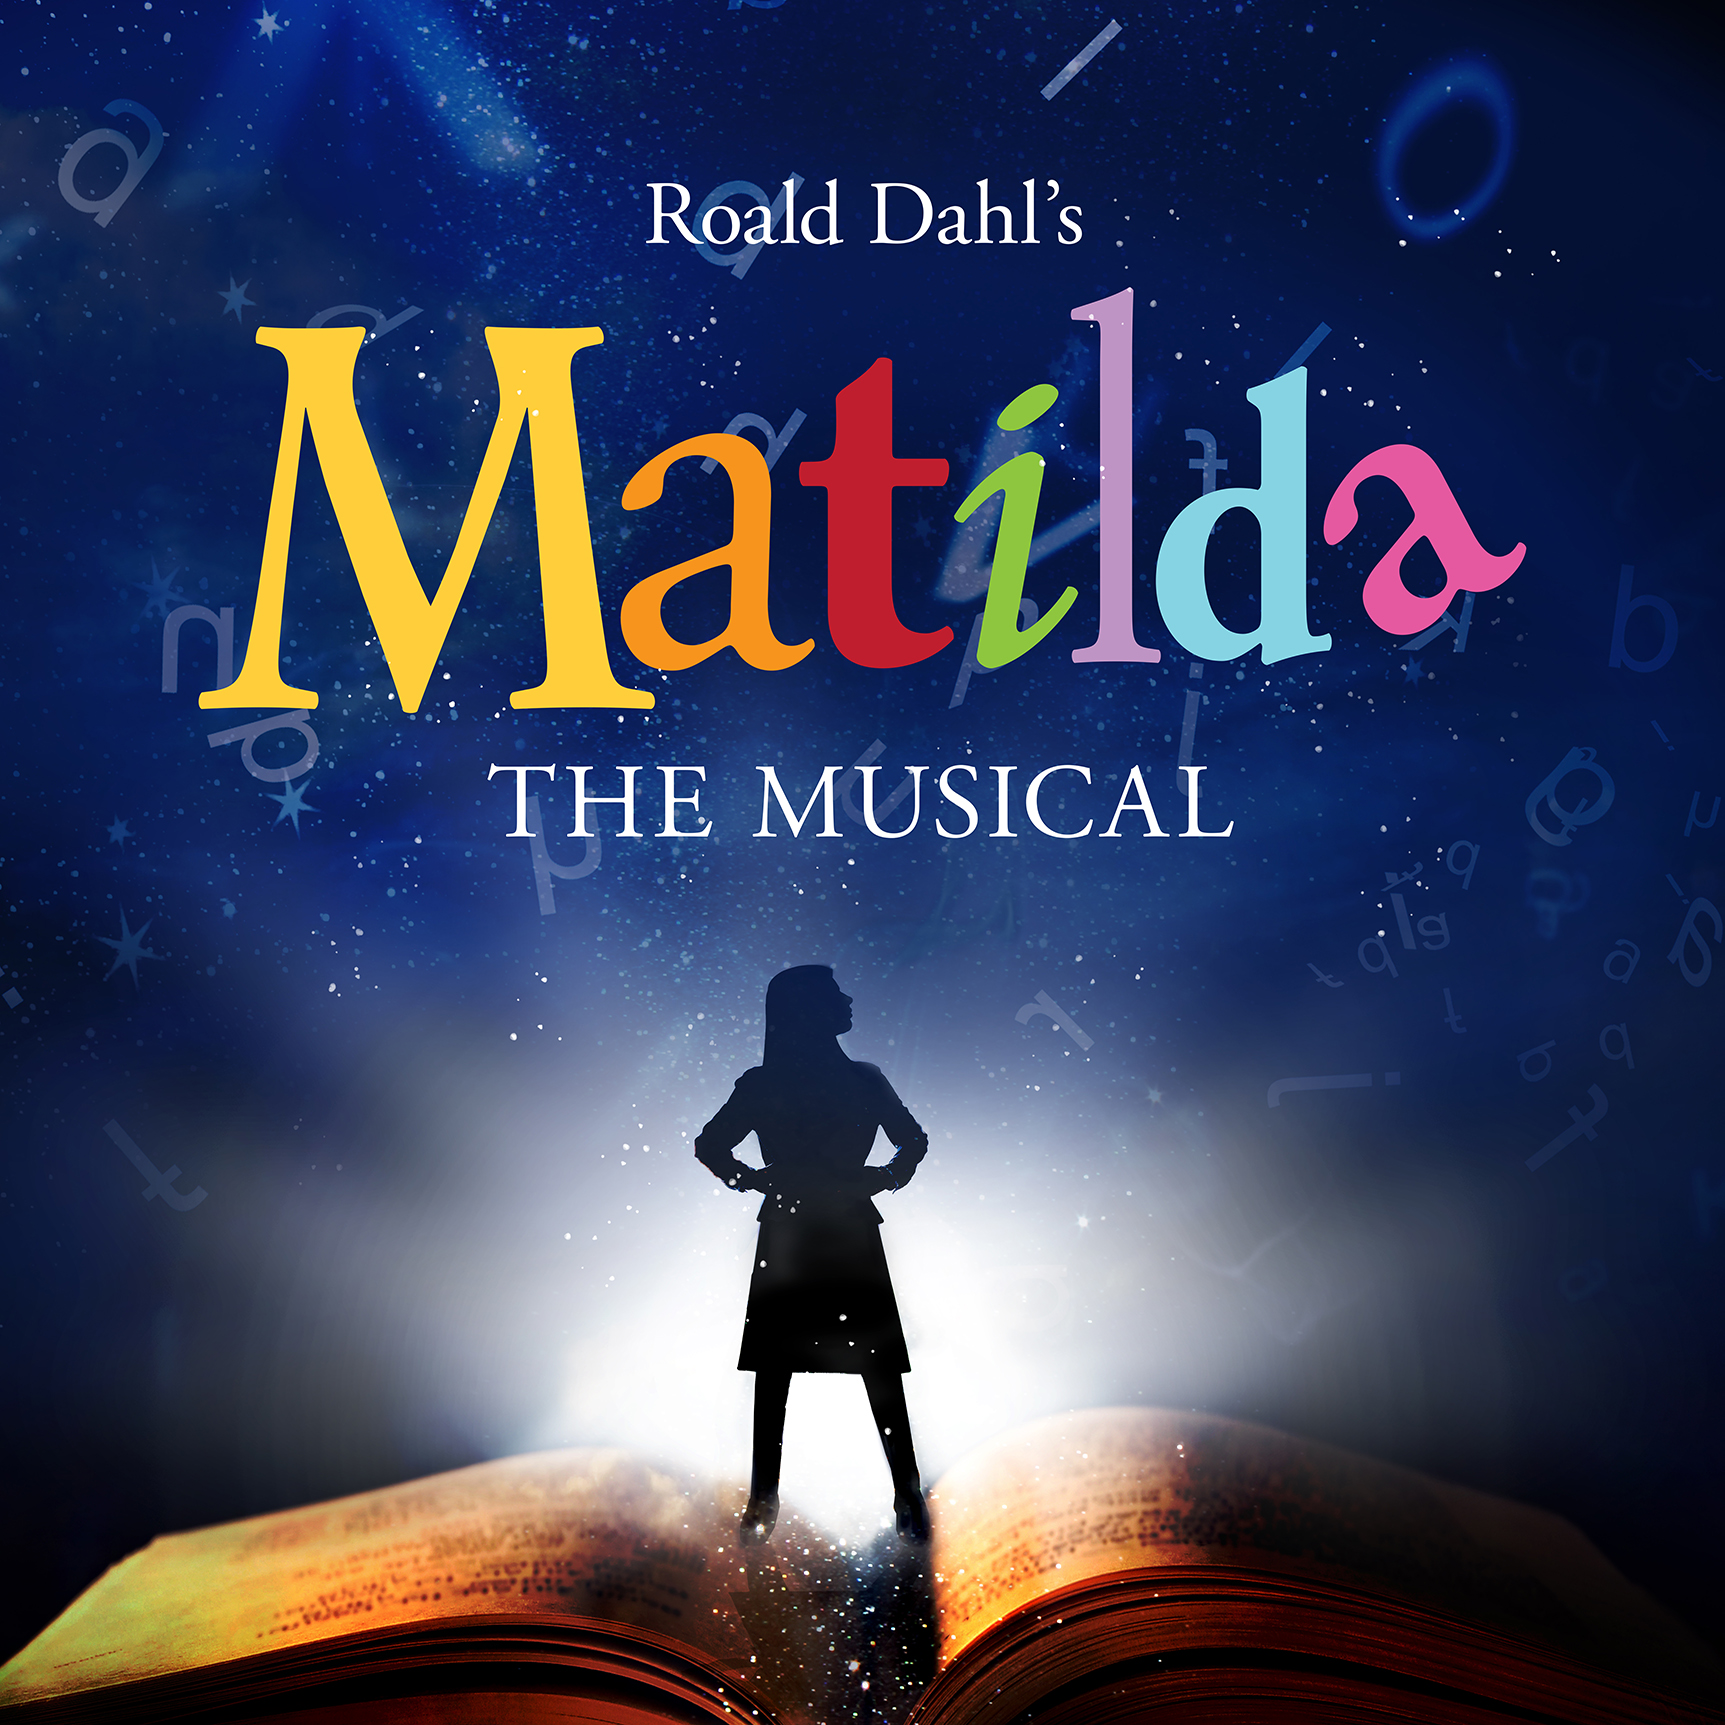 Auditions for Matilda: The Musical